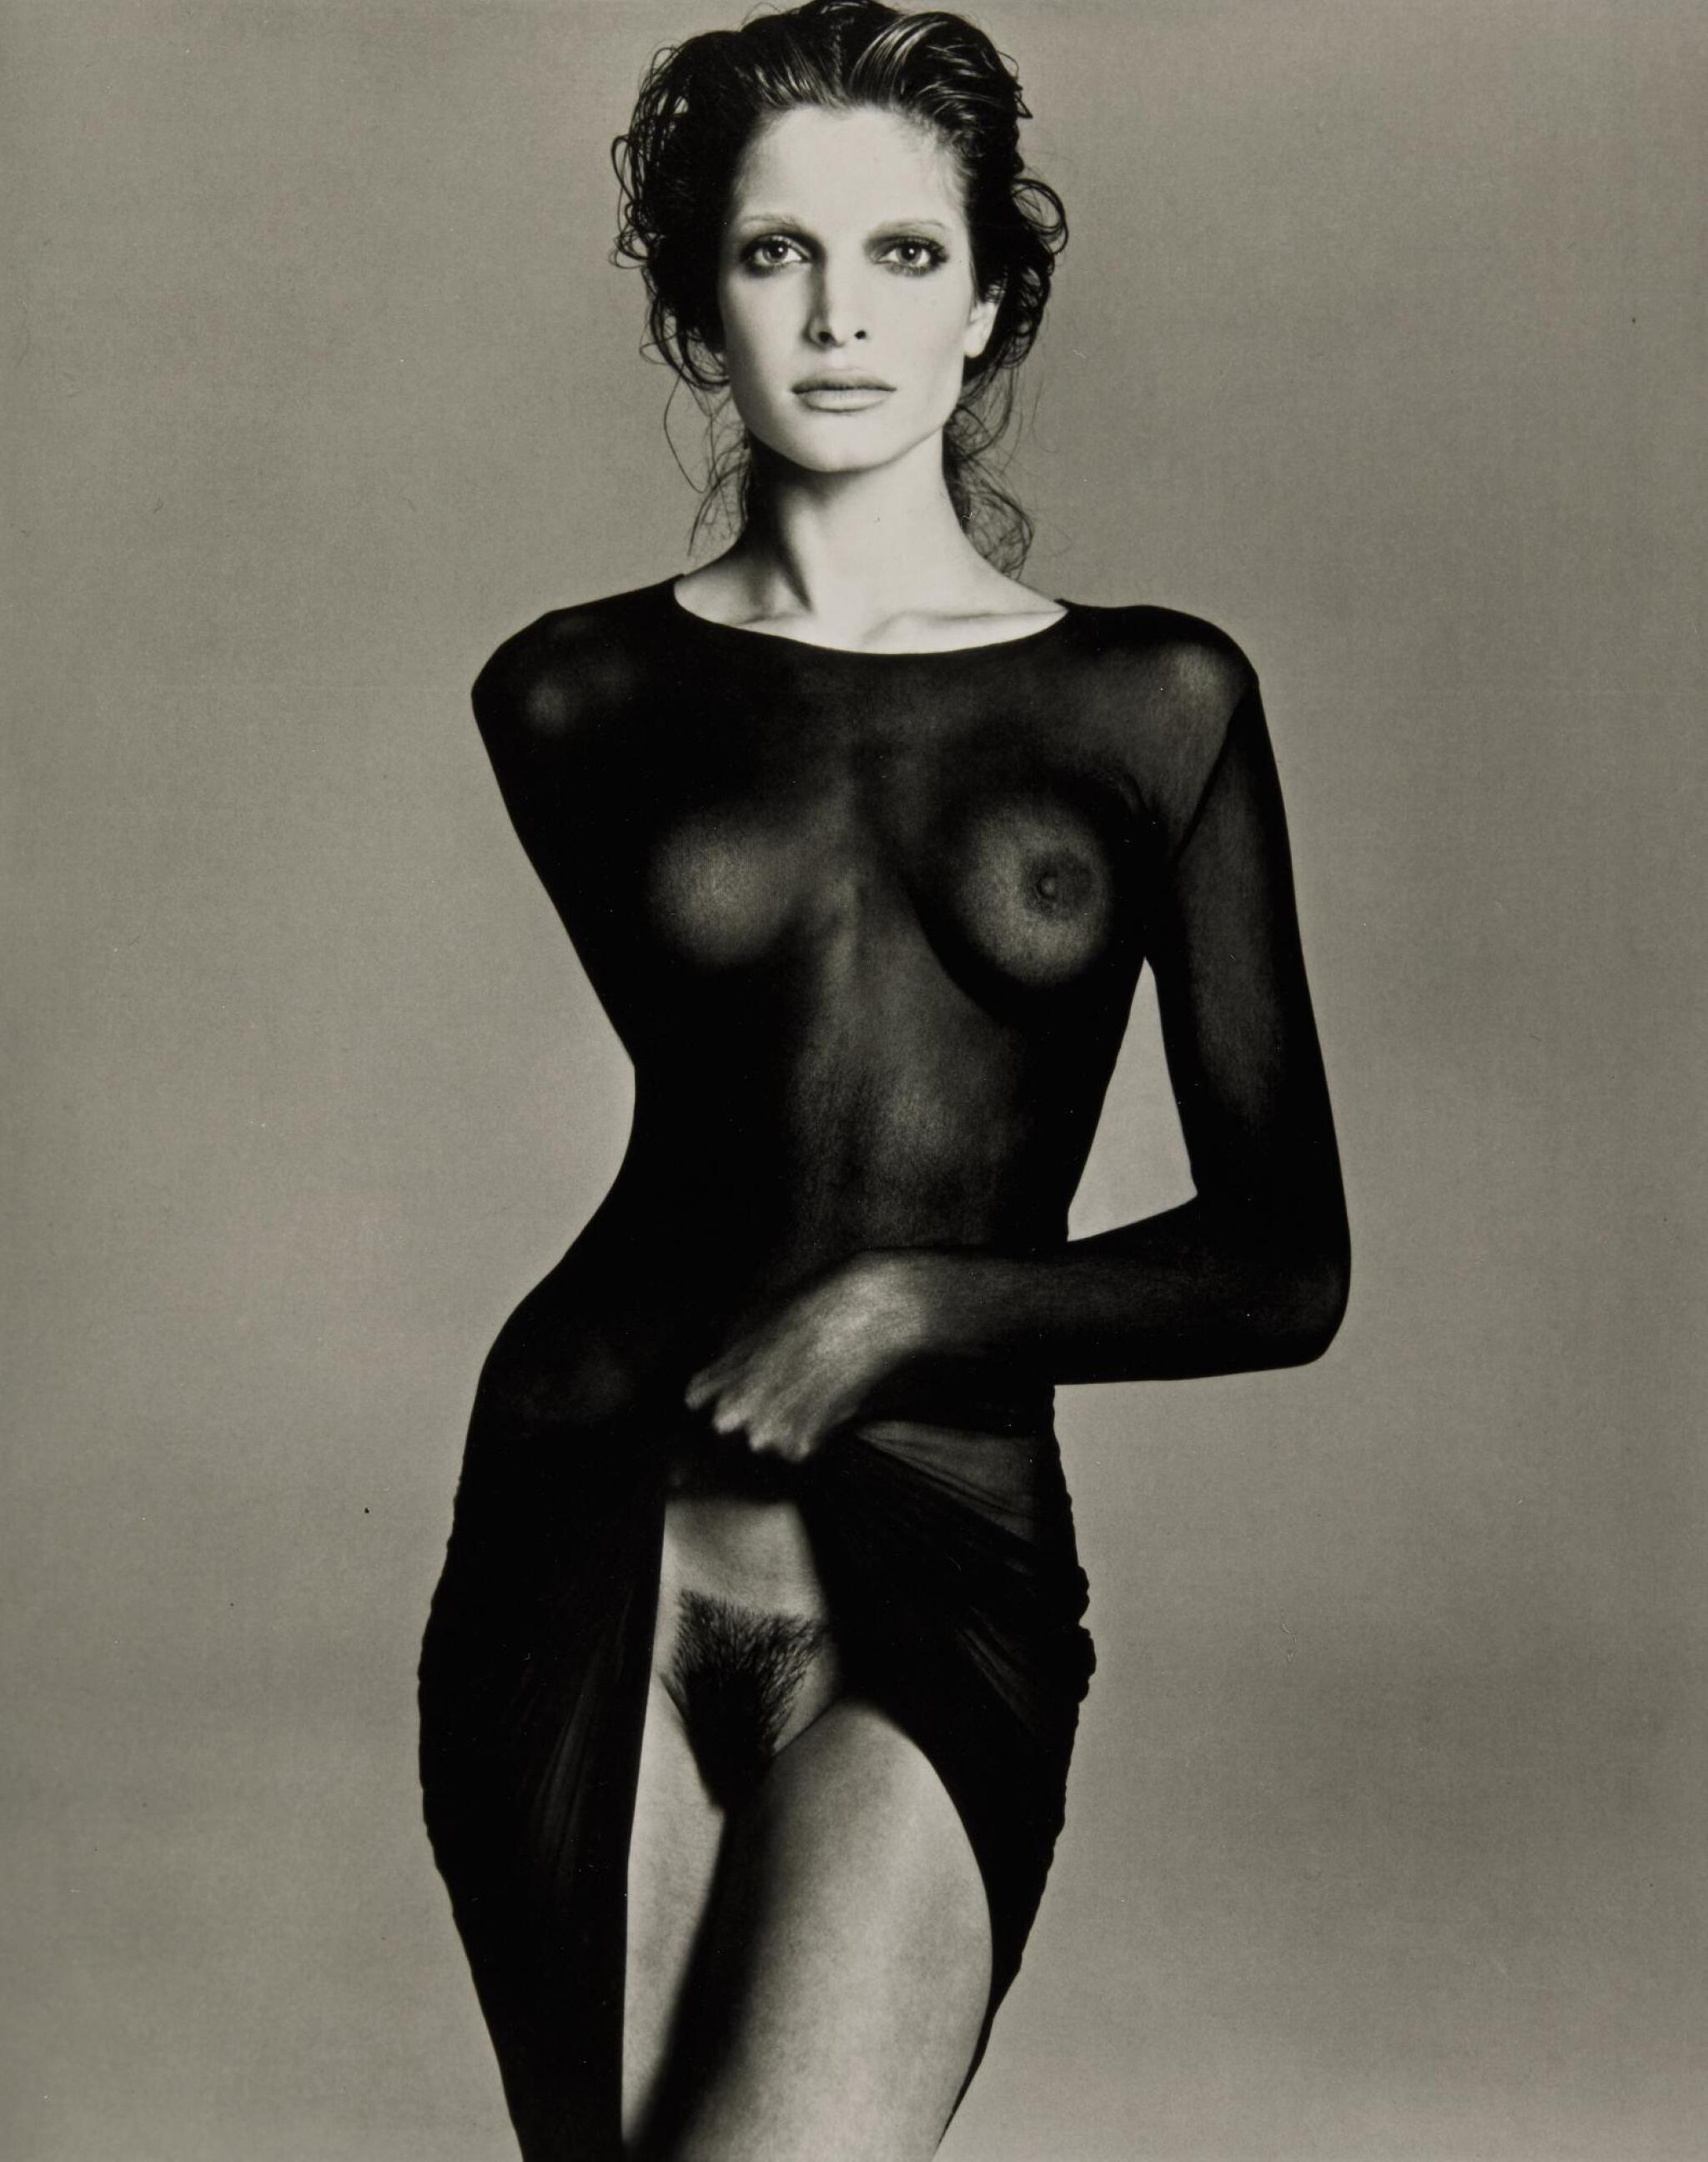 View full screen - View 1 of Lot 24. RICHARD AVEDON | 'STEPHANIE SEYMOUR, MODEL', NEW YORK CITY, 1992.